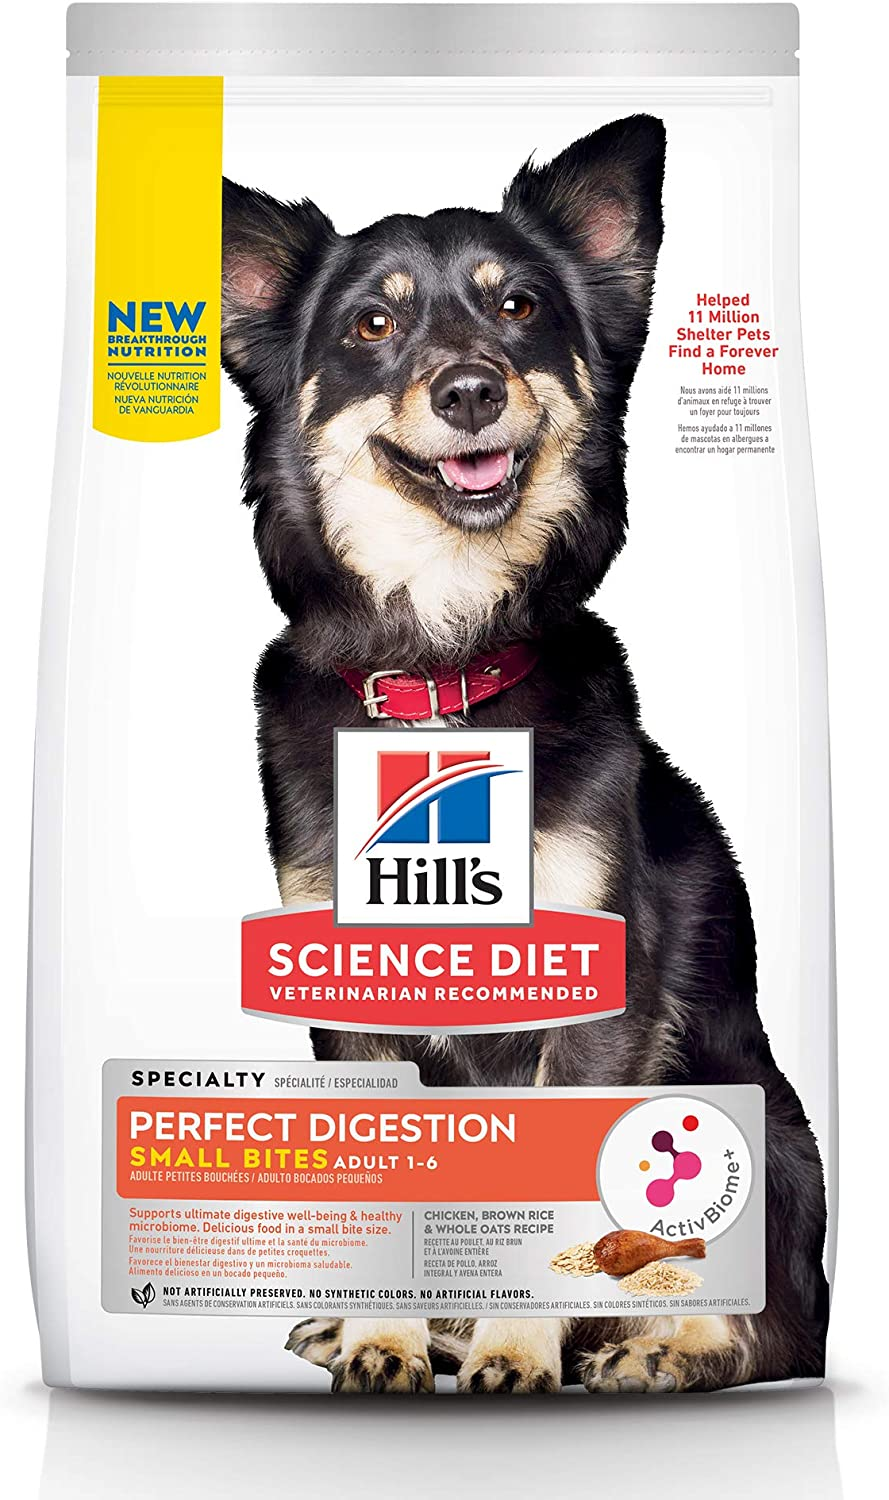 Hill's Science Diet Adult, Small Bites, Dog Dry Food Perfect Digestion